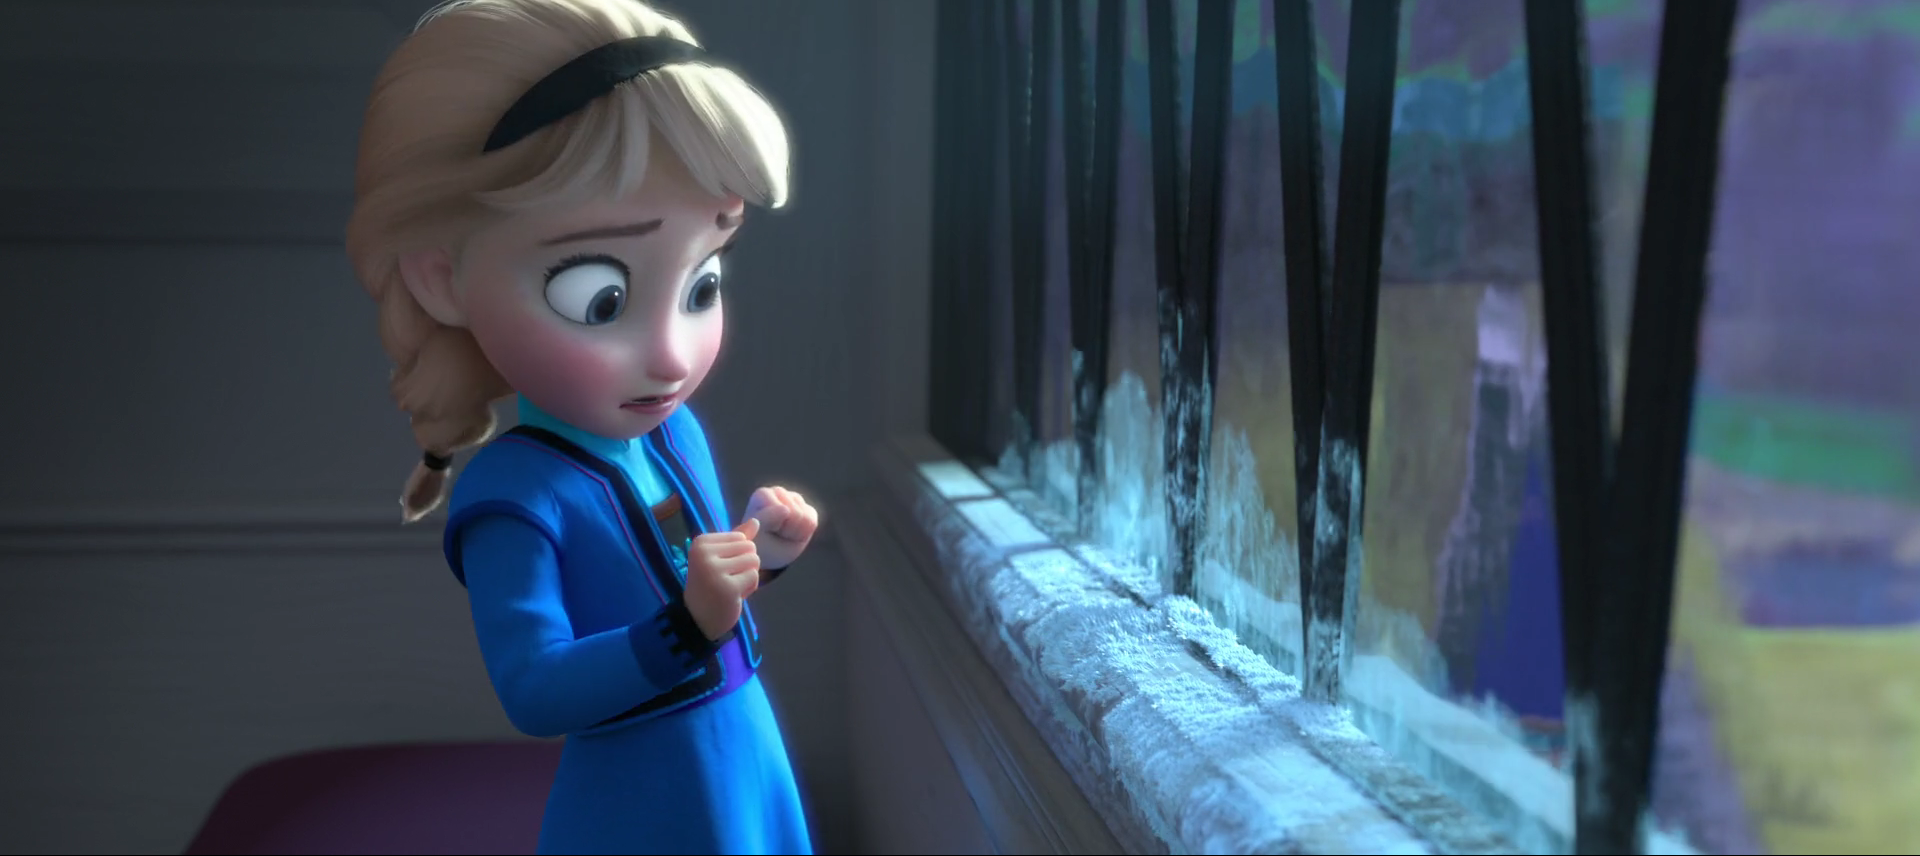 Queen elsa of arendelle also known as the snow queen is the deuteragonist of disney s